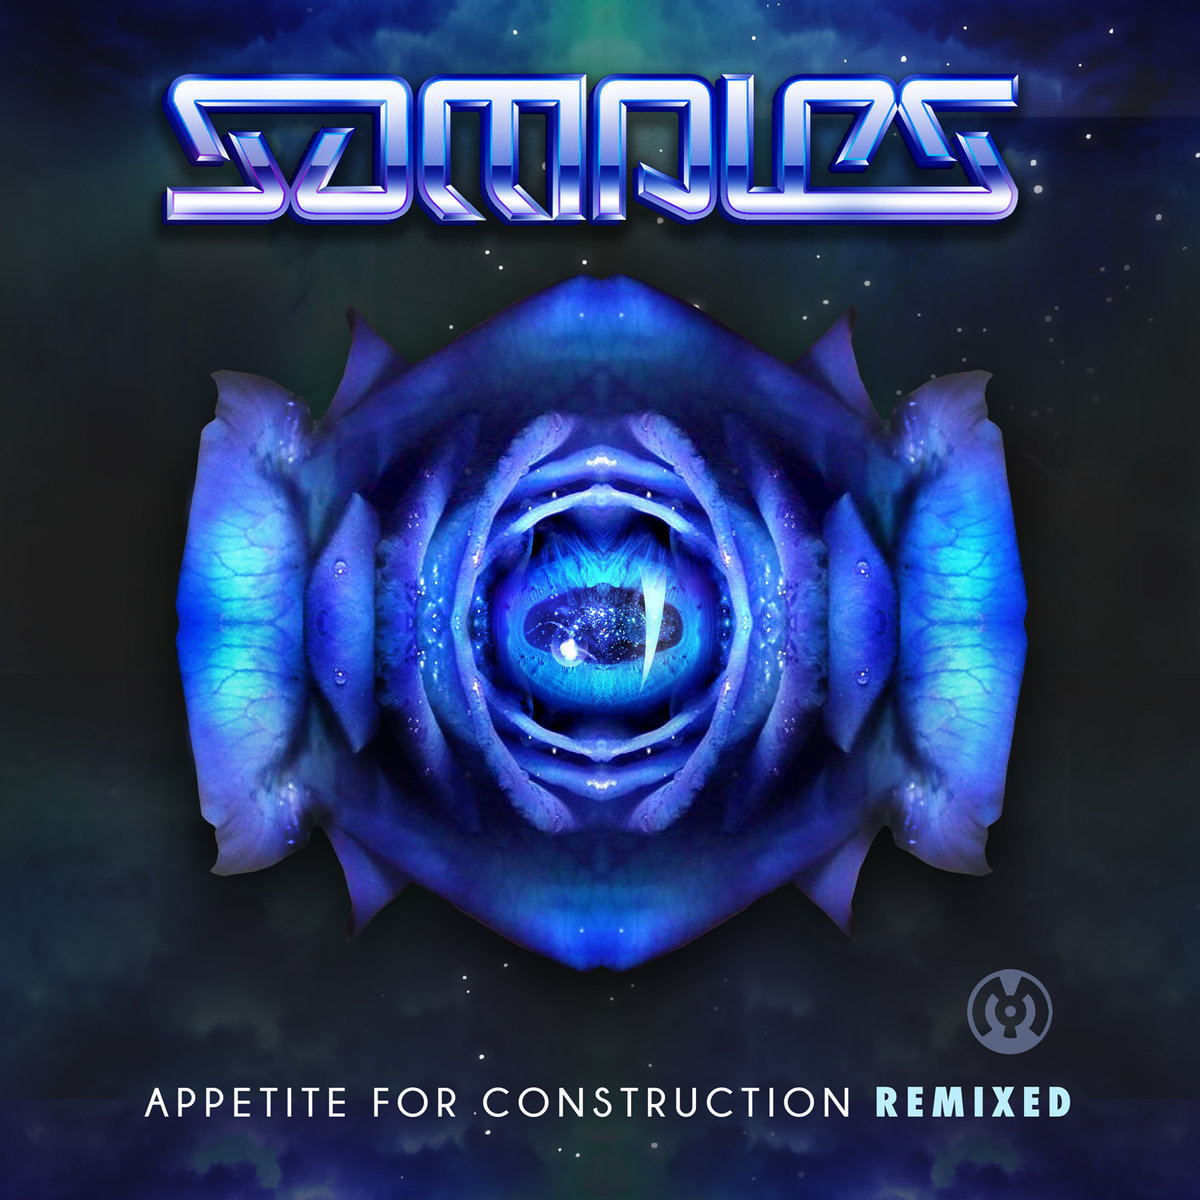 Samples - Corporate (Hobbz Remix) @ 'Appetite For Construction Remixed' album (electronic, dubstep)